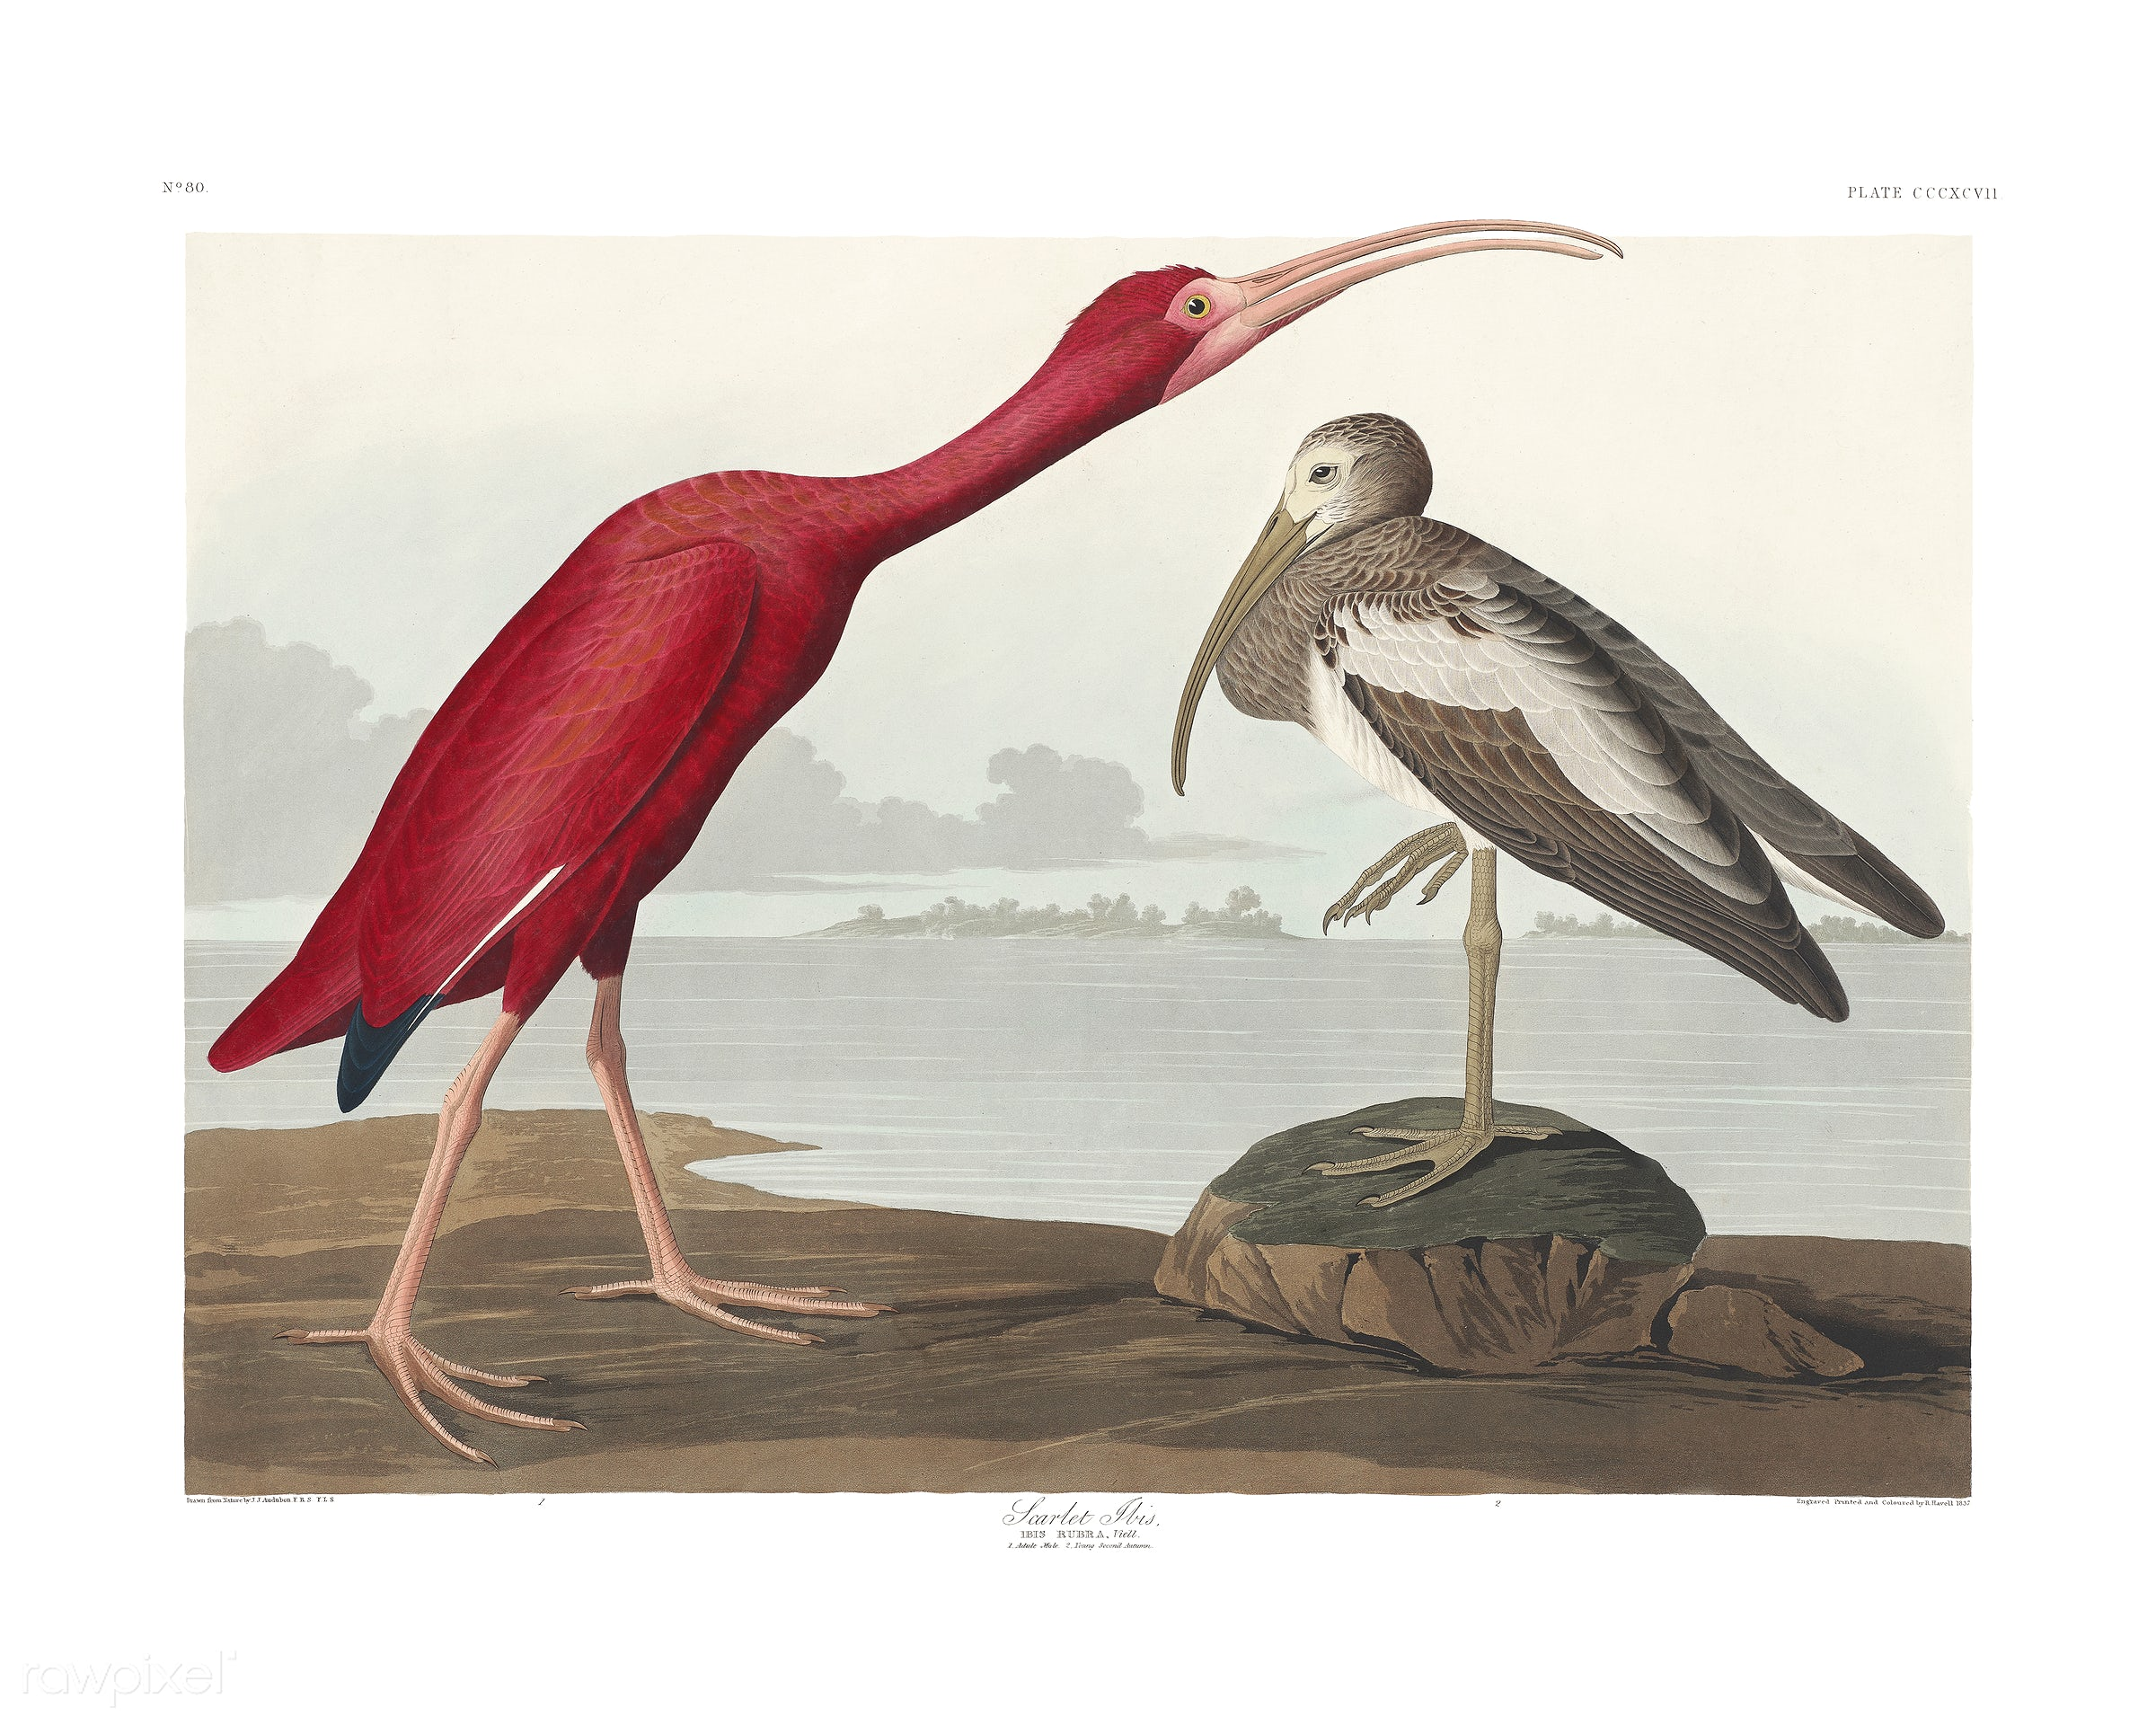 Scarlet Ibis from Birds of America (1827) illustrated by John James Audubon (1785 - 1851), etched by Robert Havell (1793 -...